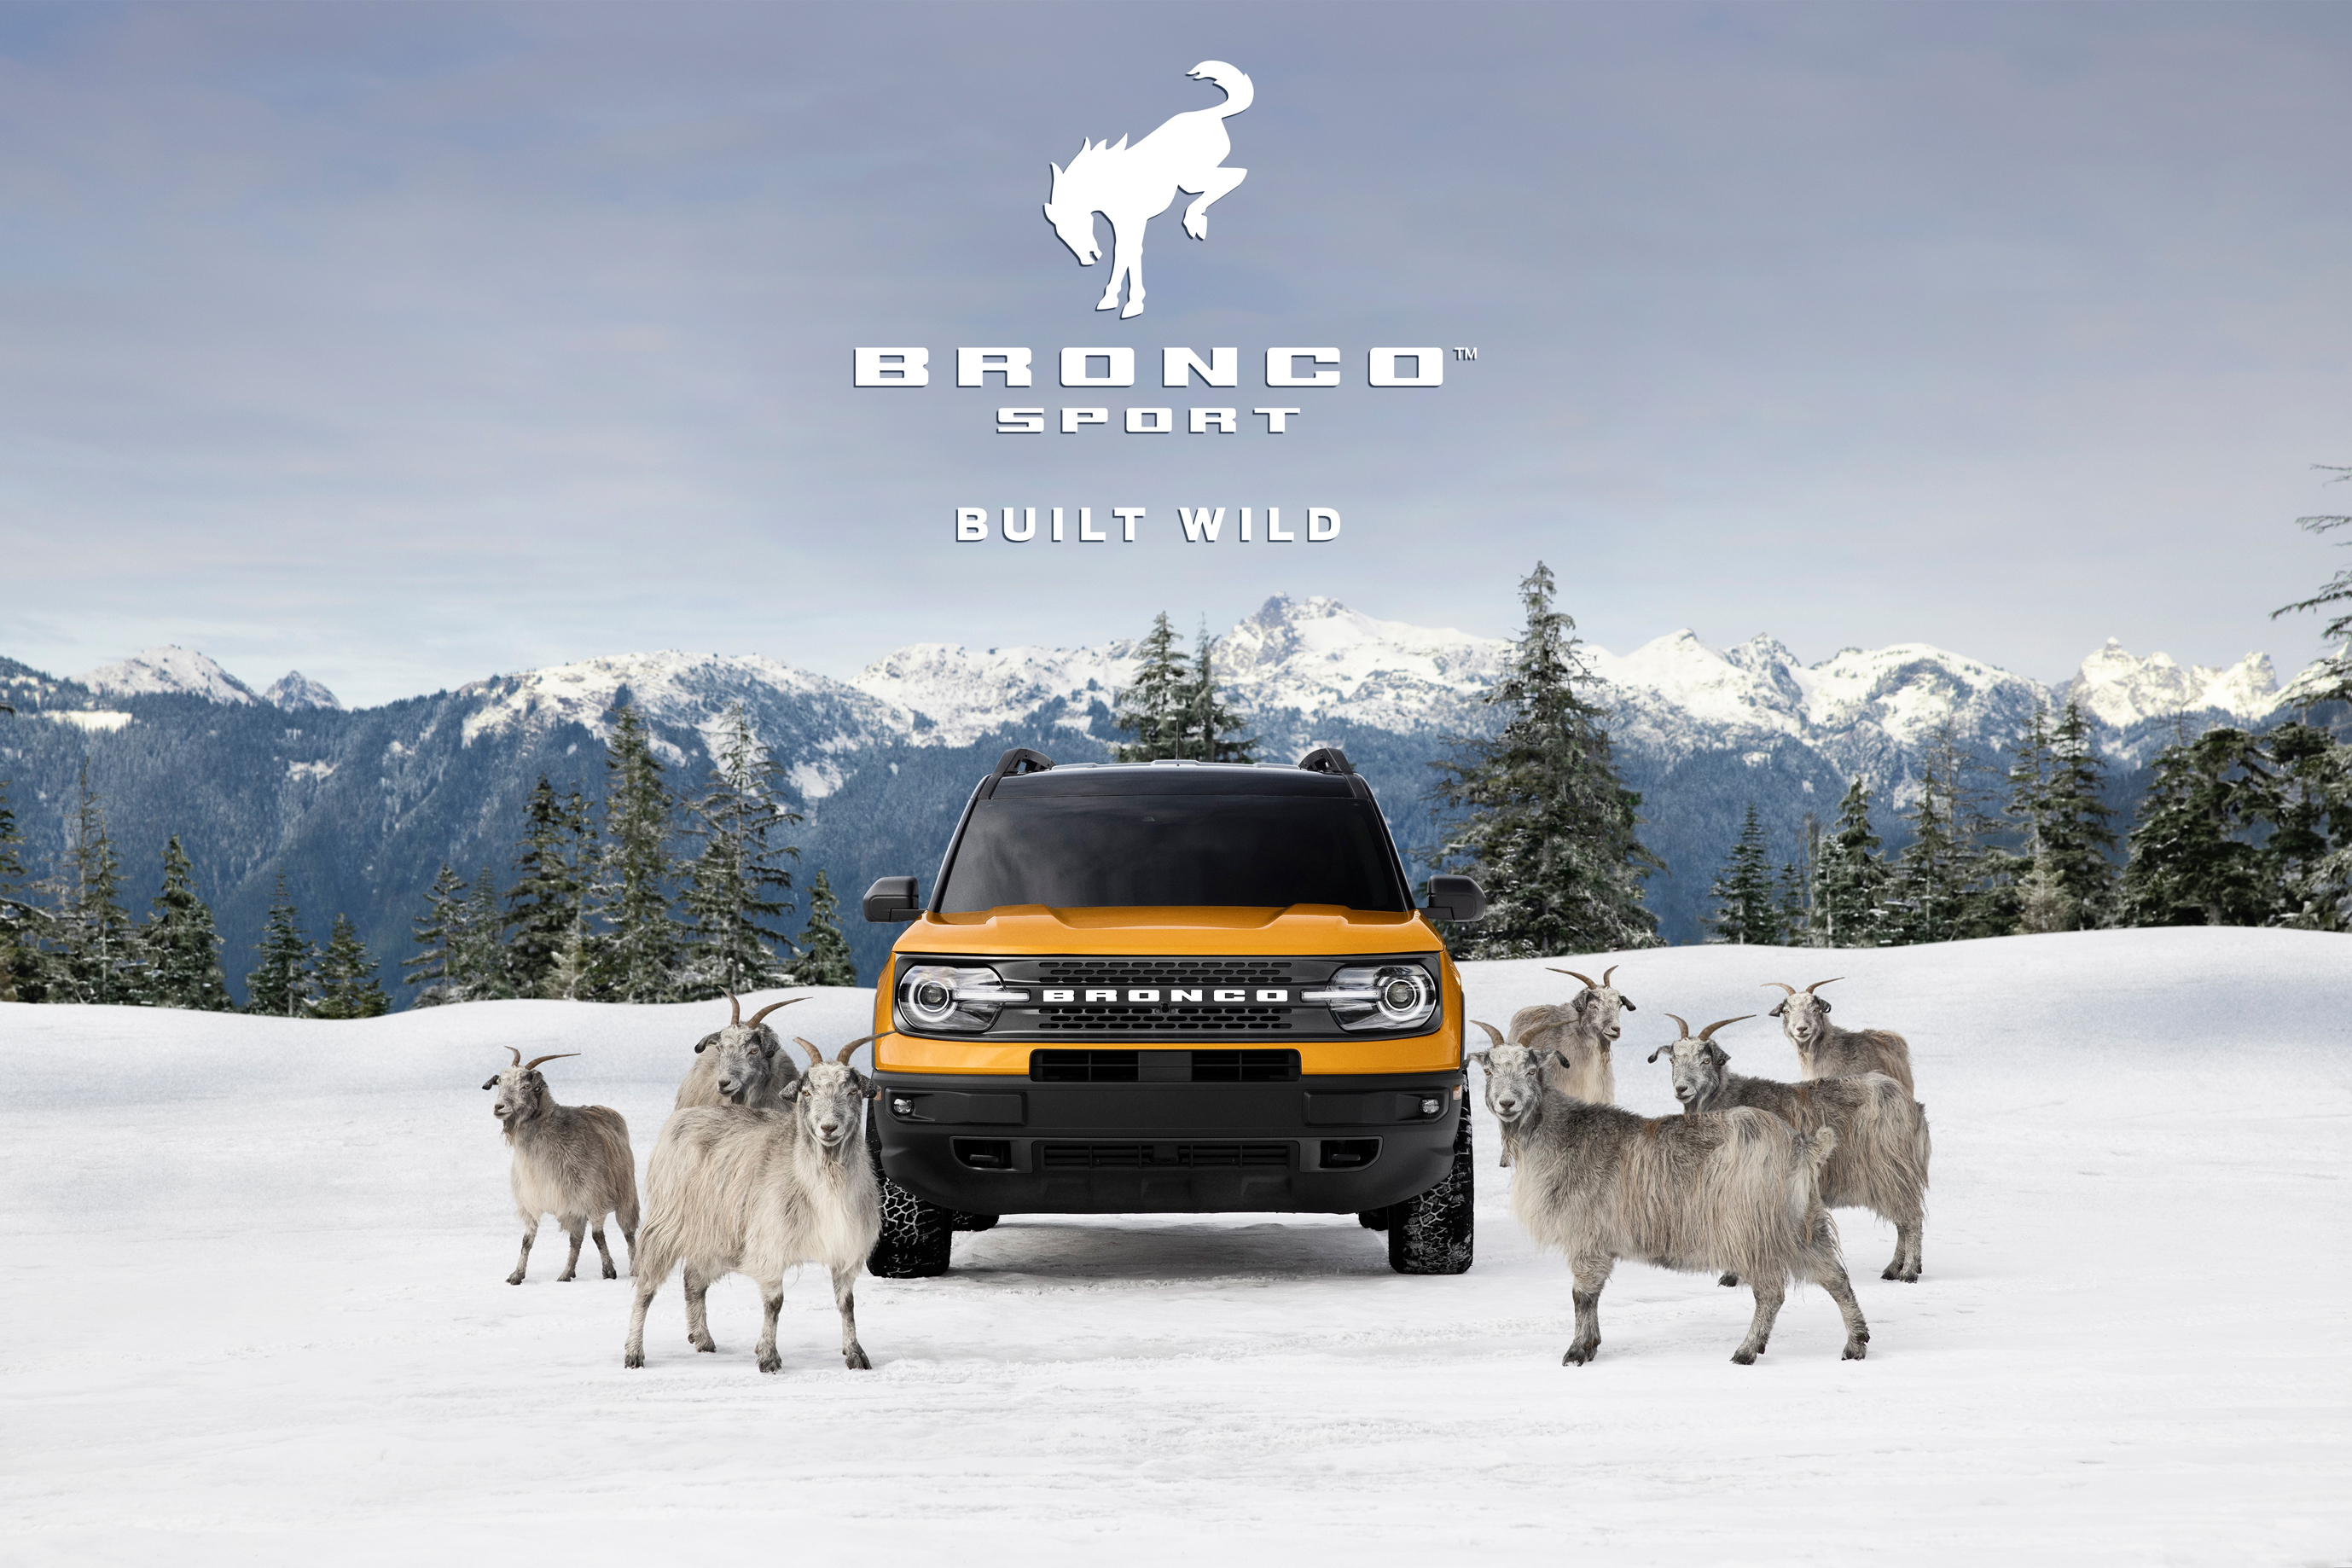 Ford Bronco Sport new ad campaign GOAT mode goat Wieden and Kennedy New York WK WKNY commercial goats